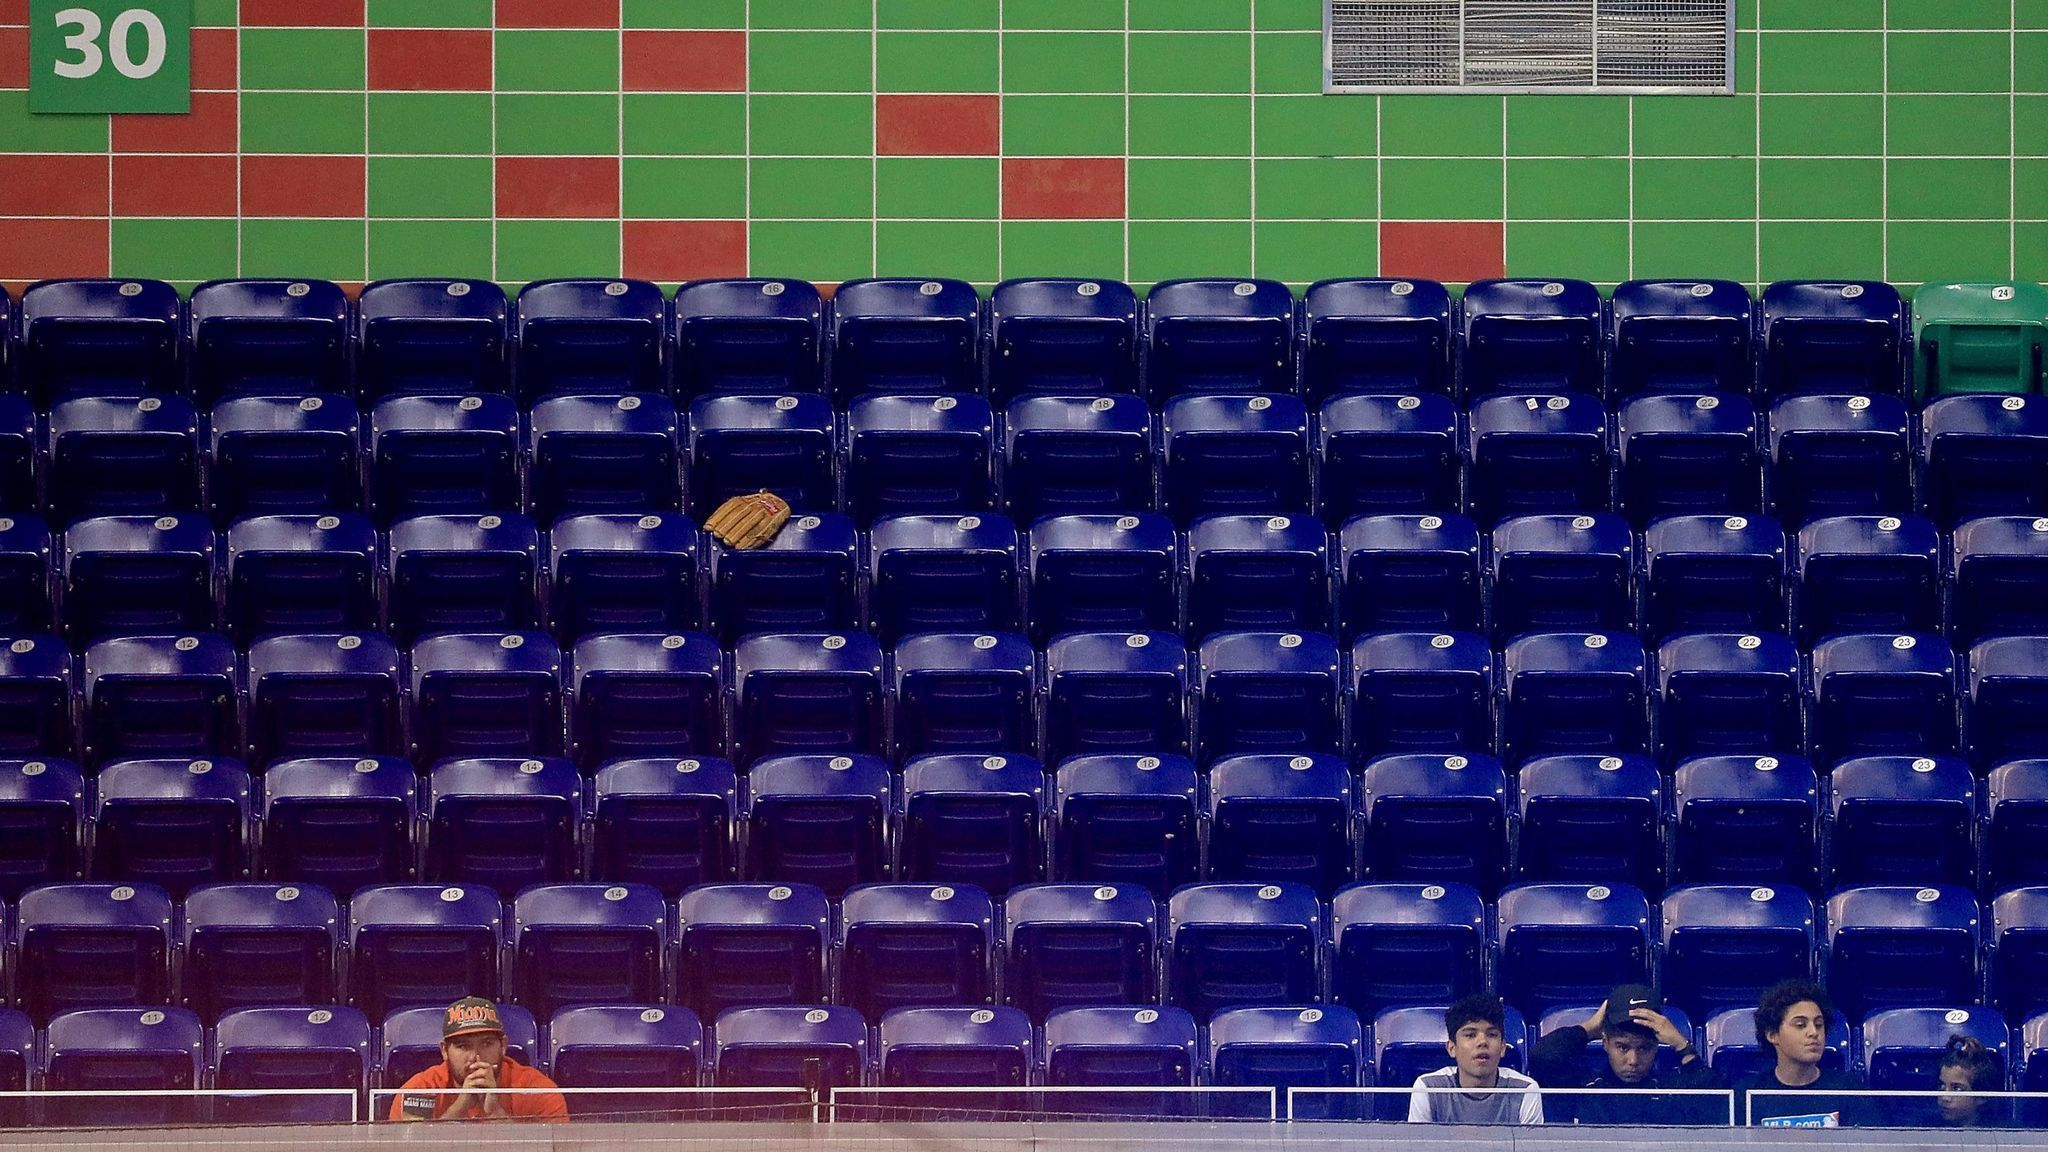 Miami Swept By Nationals In Nearly Empty Marlins Park As Hurricane Irma Approaches